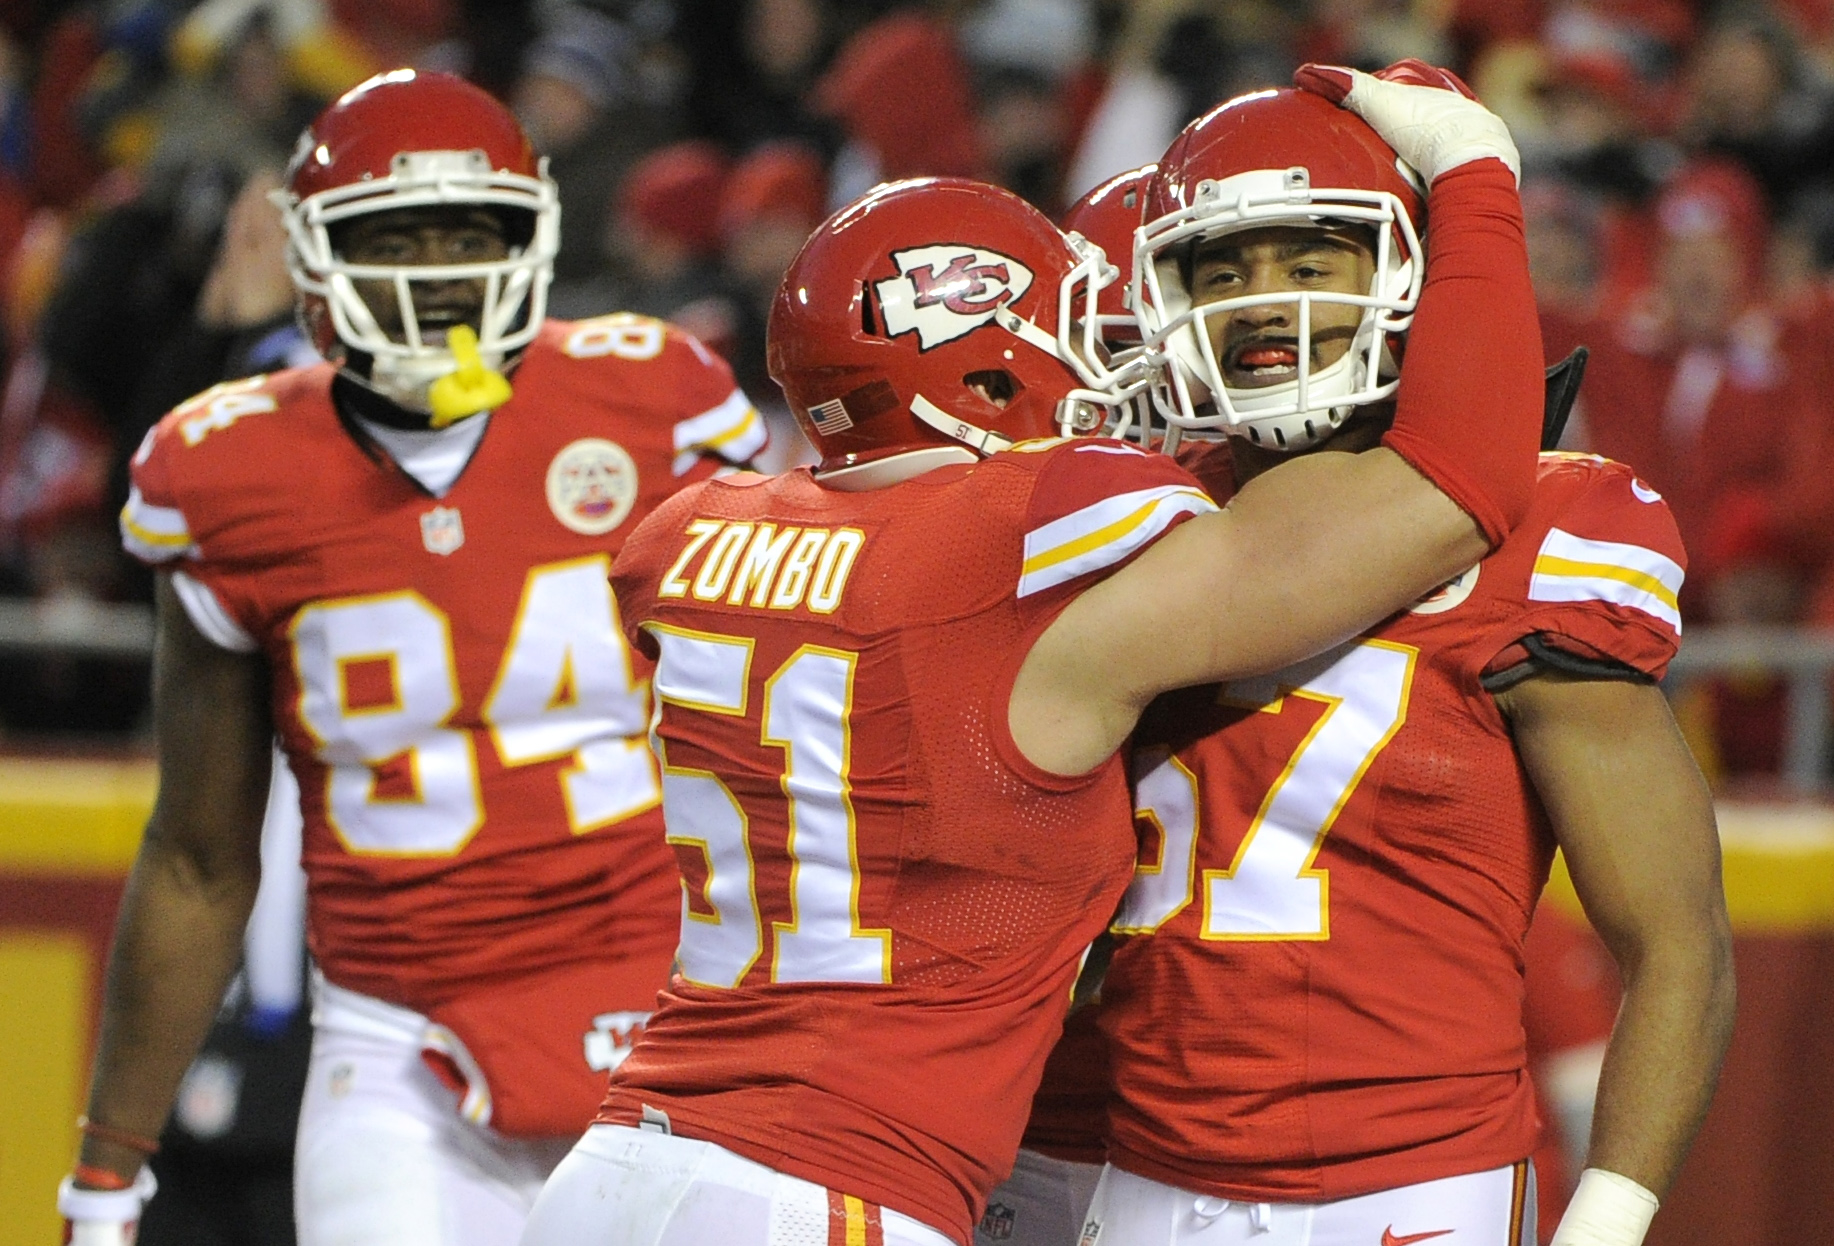 Kansas City Chiefs linebacker Frank Zombo (51) hugs linebacker D.J. Alexander (57) after Alexander blocked a punt by the Oakland Raiders for a safety during the second half of an NFL football game in Kansas City, Mo., Sunday, Jan. 3, 2016. (AP Photo/Ed Zu